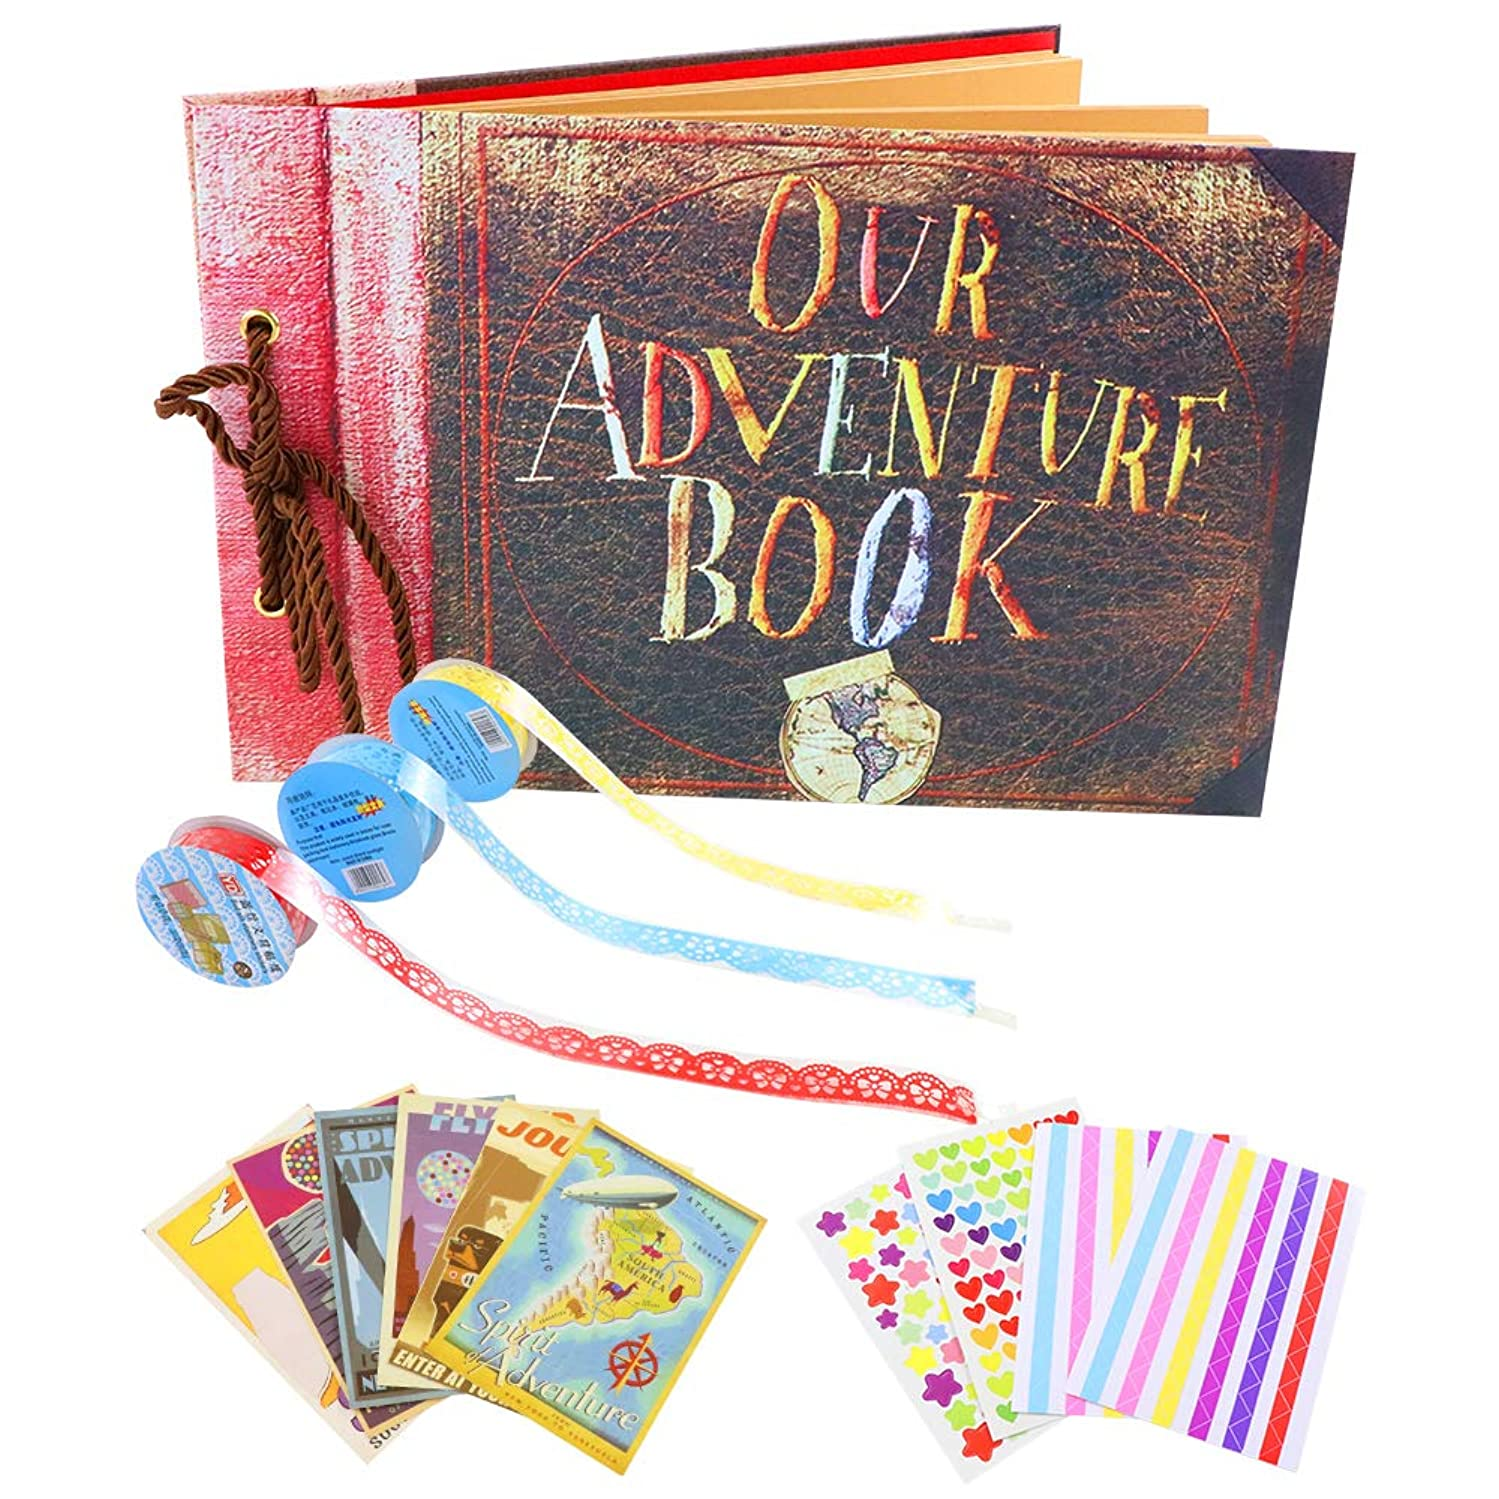 Our Adventure Book, DIY Photo Album Scrapbook with Pixar Postcards and Various Decorative Accessories for Baby Growth, Wedding Photo Album,Father's Day Gift. (Classic Style)